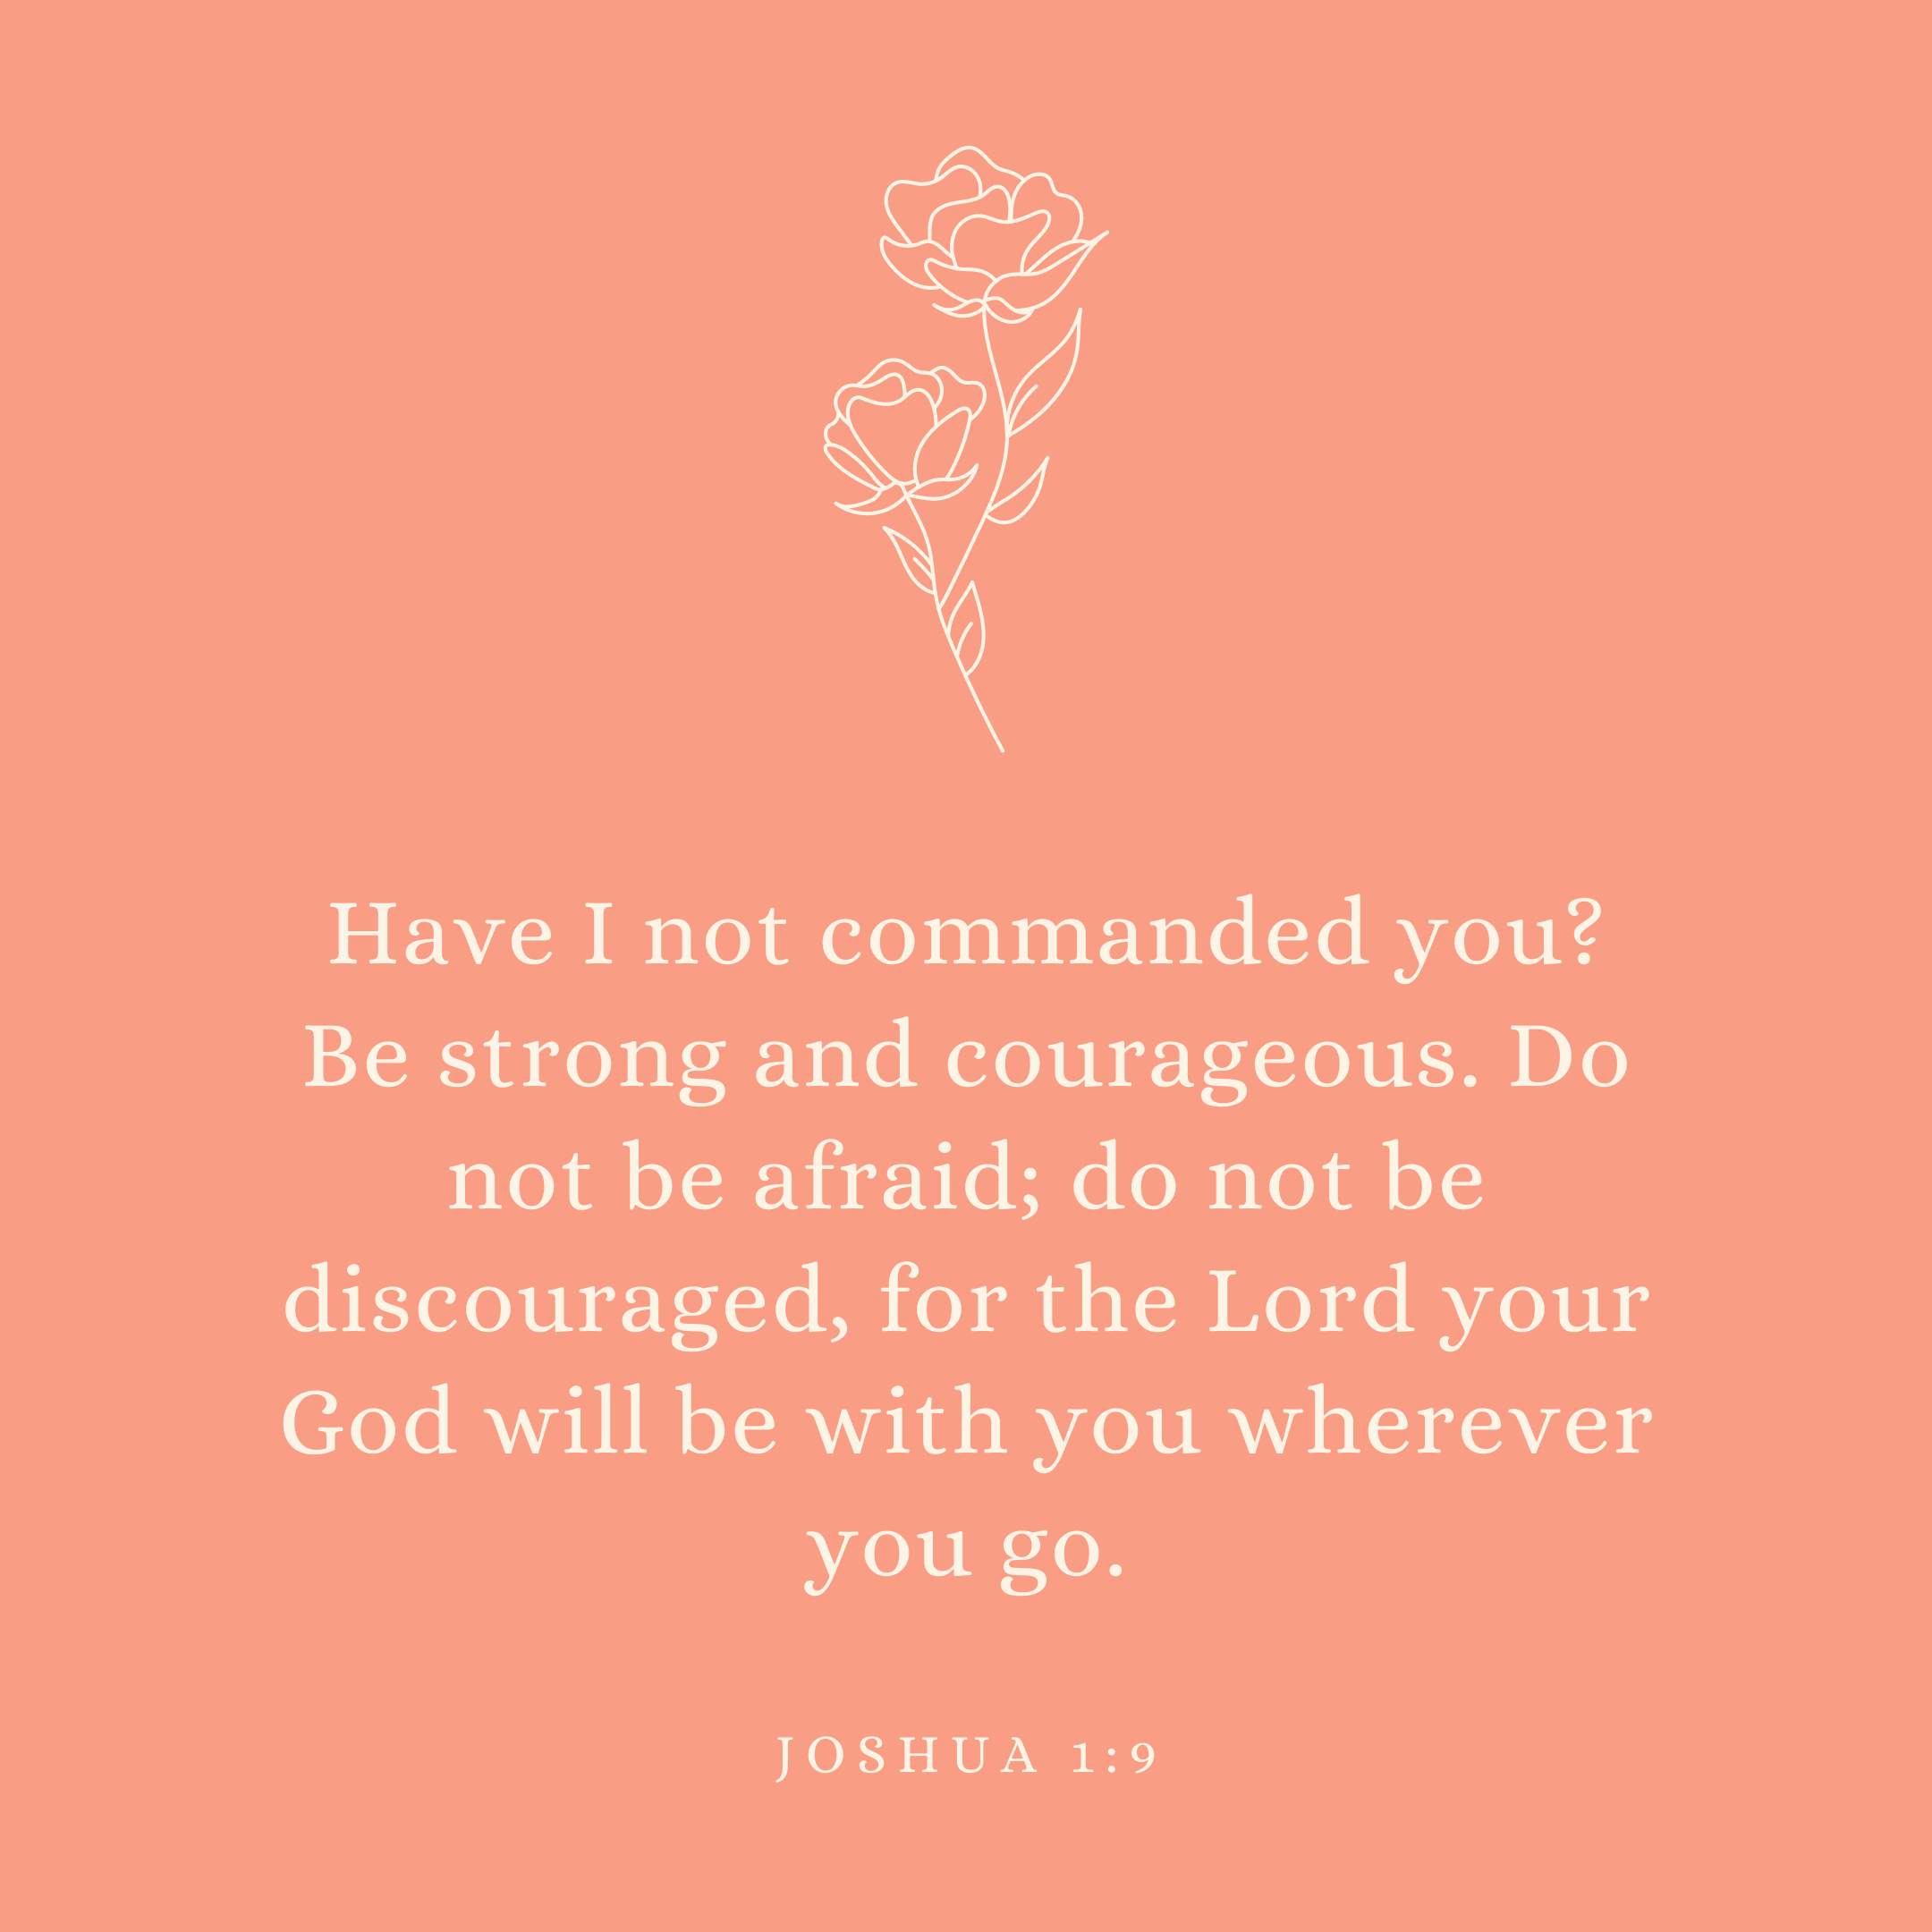 Joshua 1:9 Have I not commanded you? Be strong and courageous. Do not be afraid; do not be discouraged, for the Lord your God will be with you wherever you go.